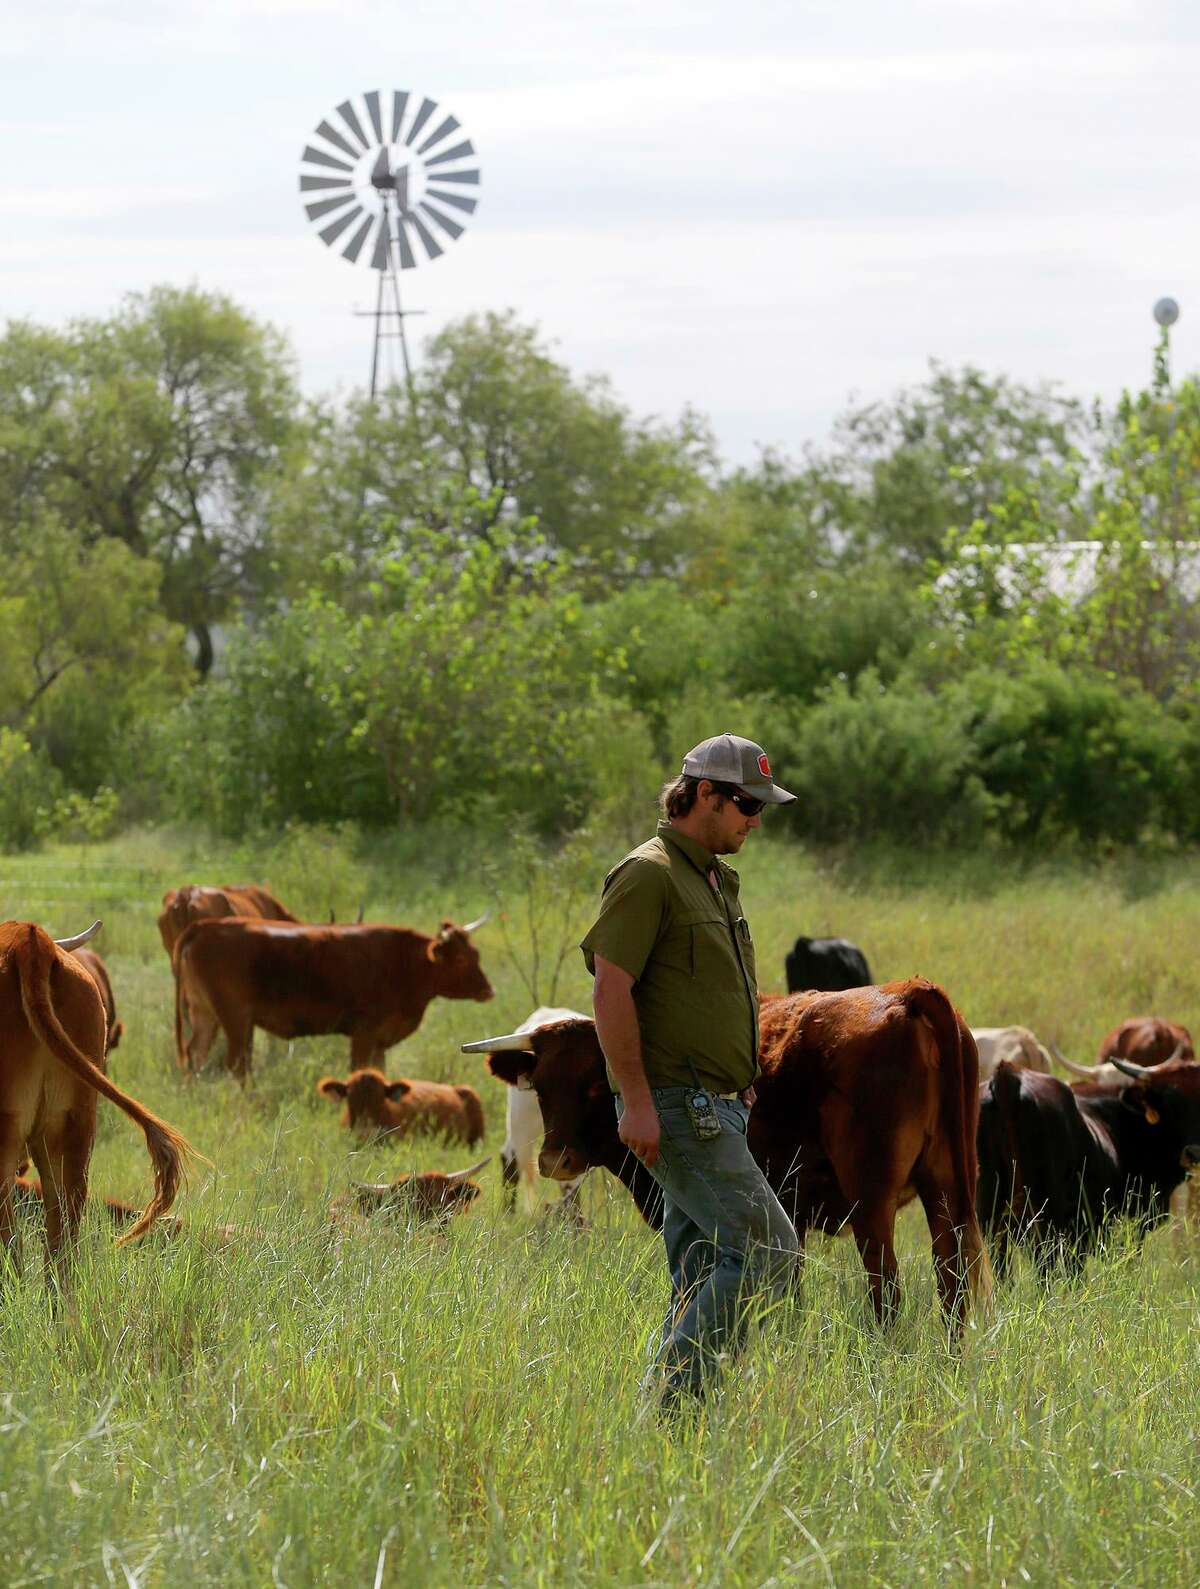 Travis Krause walks past grass fed cattle at the Parker Creek Ranch near D'Hanis. The Krause family specializes in pasture raised chickens for eggs and meat, as well as grass fed beef and pasture raised turkeys.